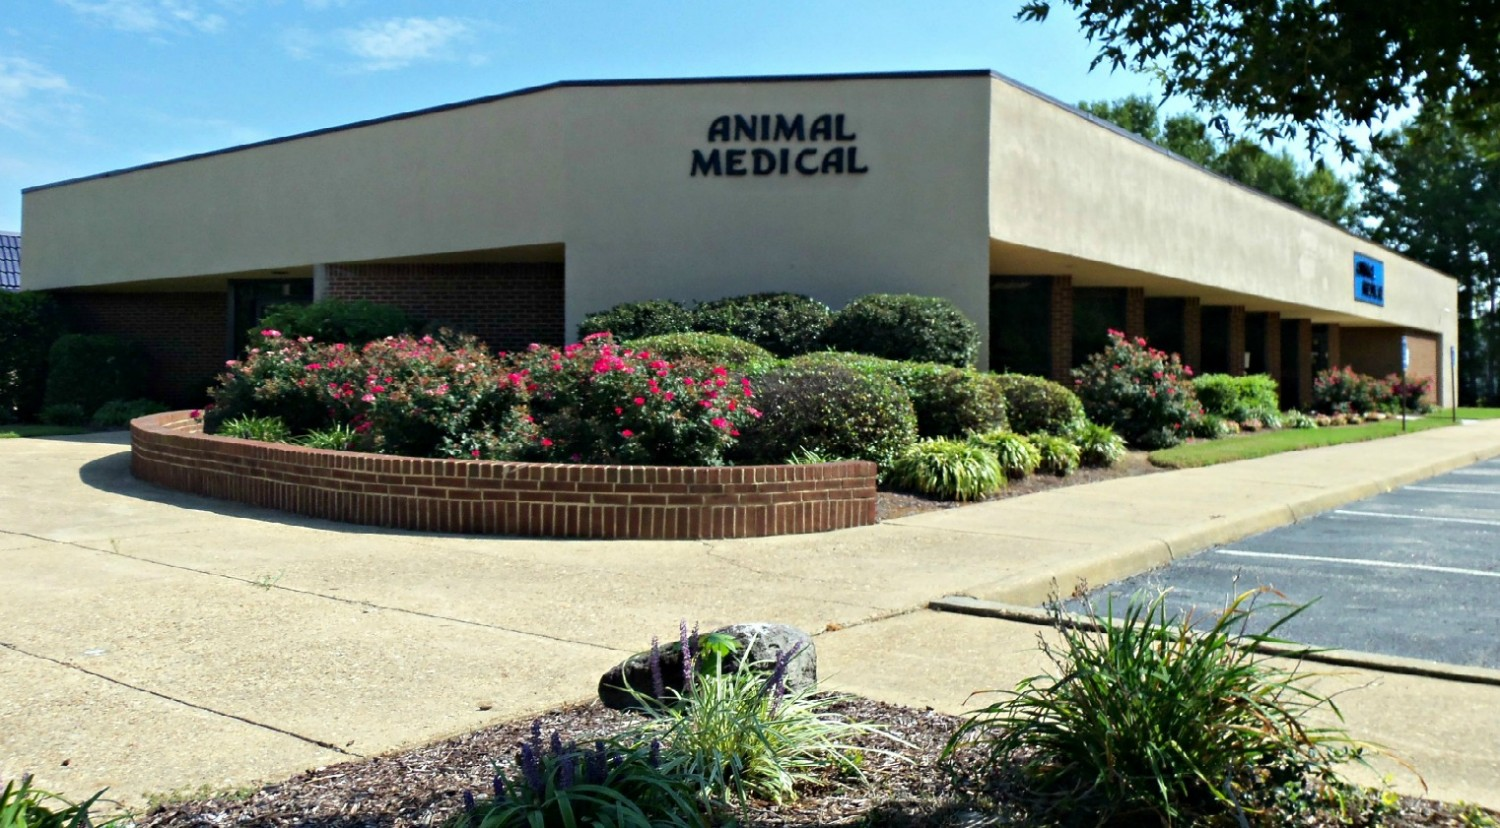 Animal Medical Clinic of Chesapeake 921 Battlefield Blvd 23320